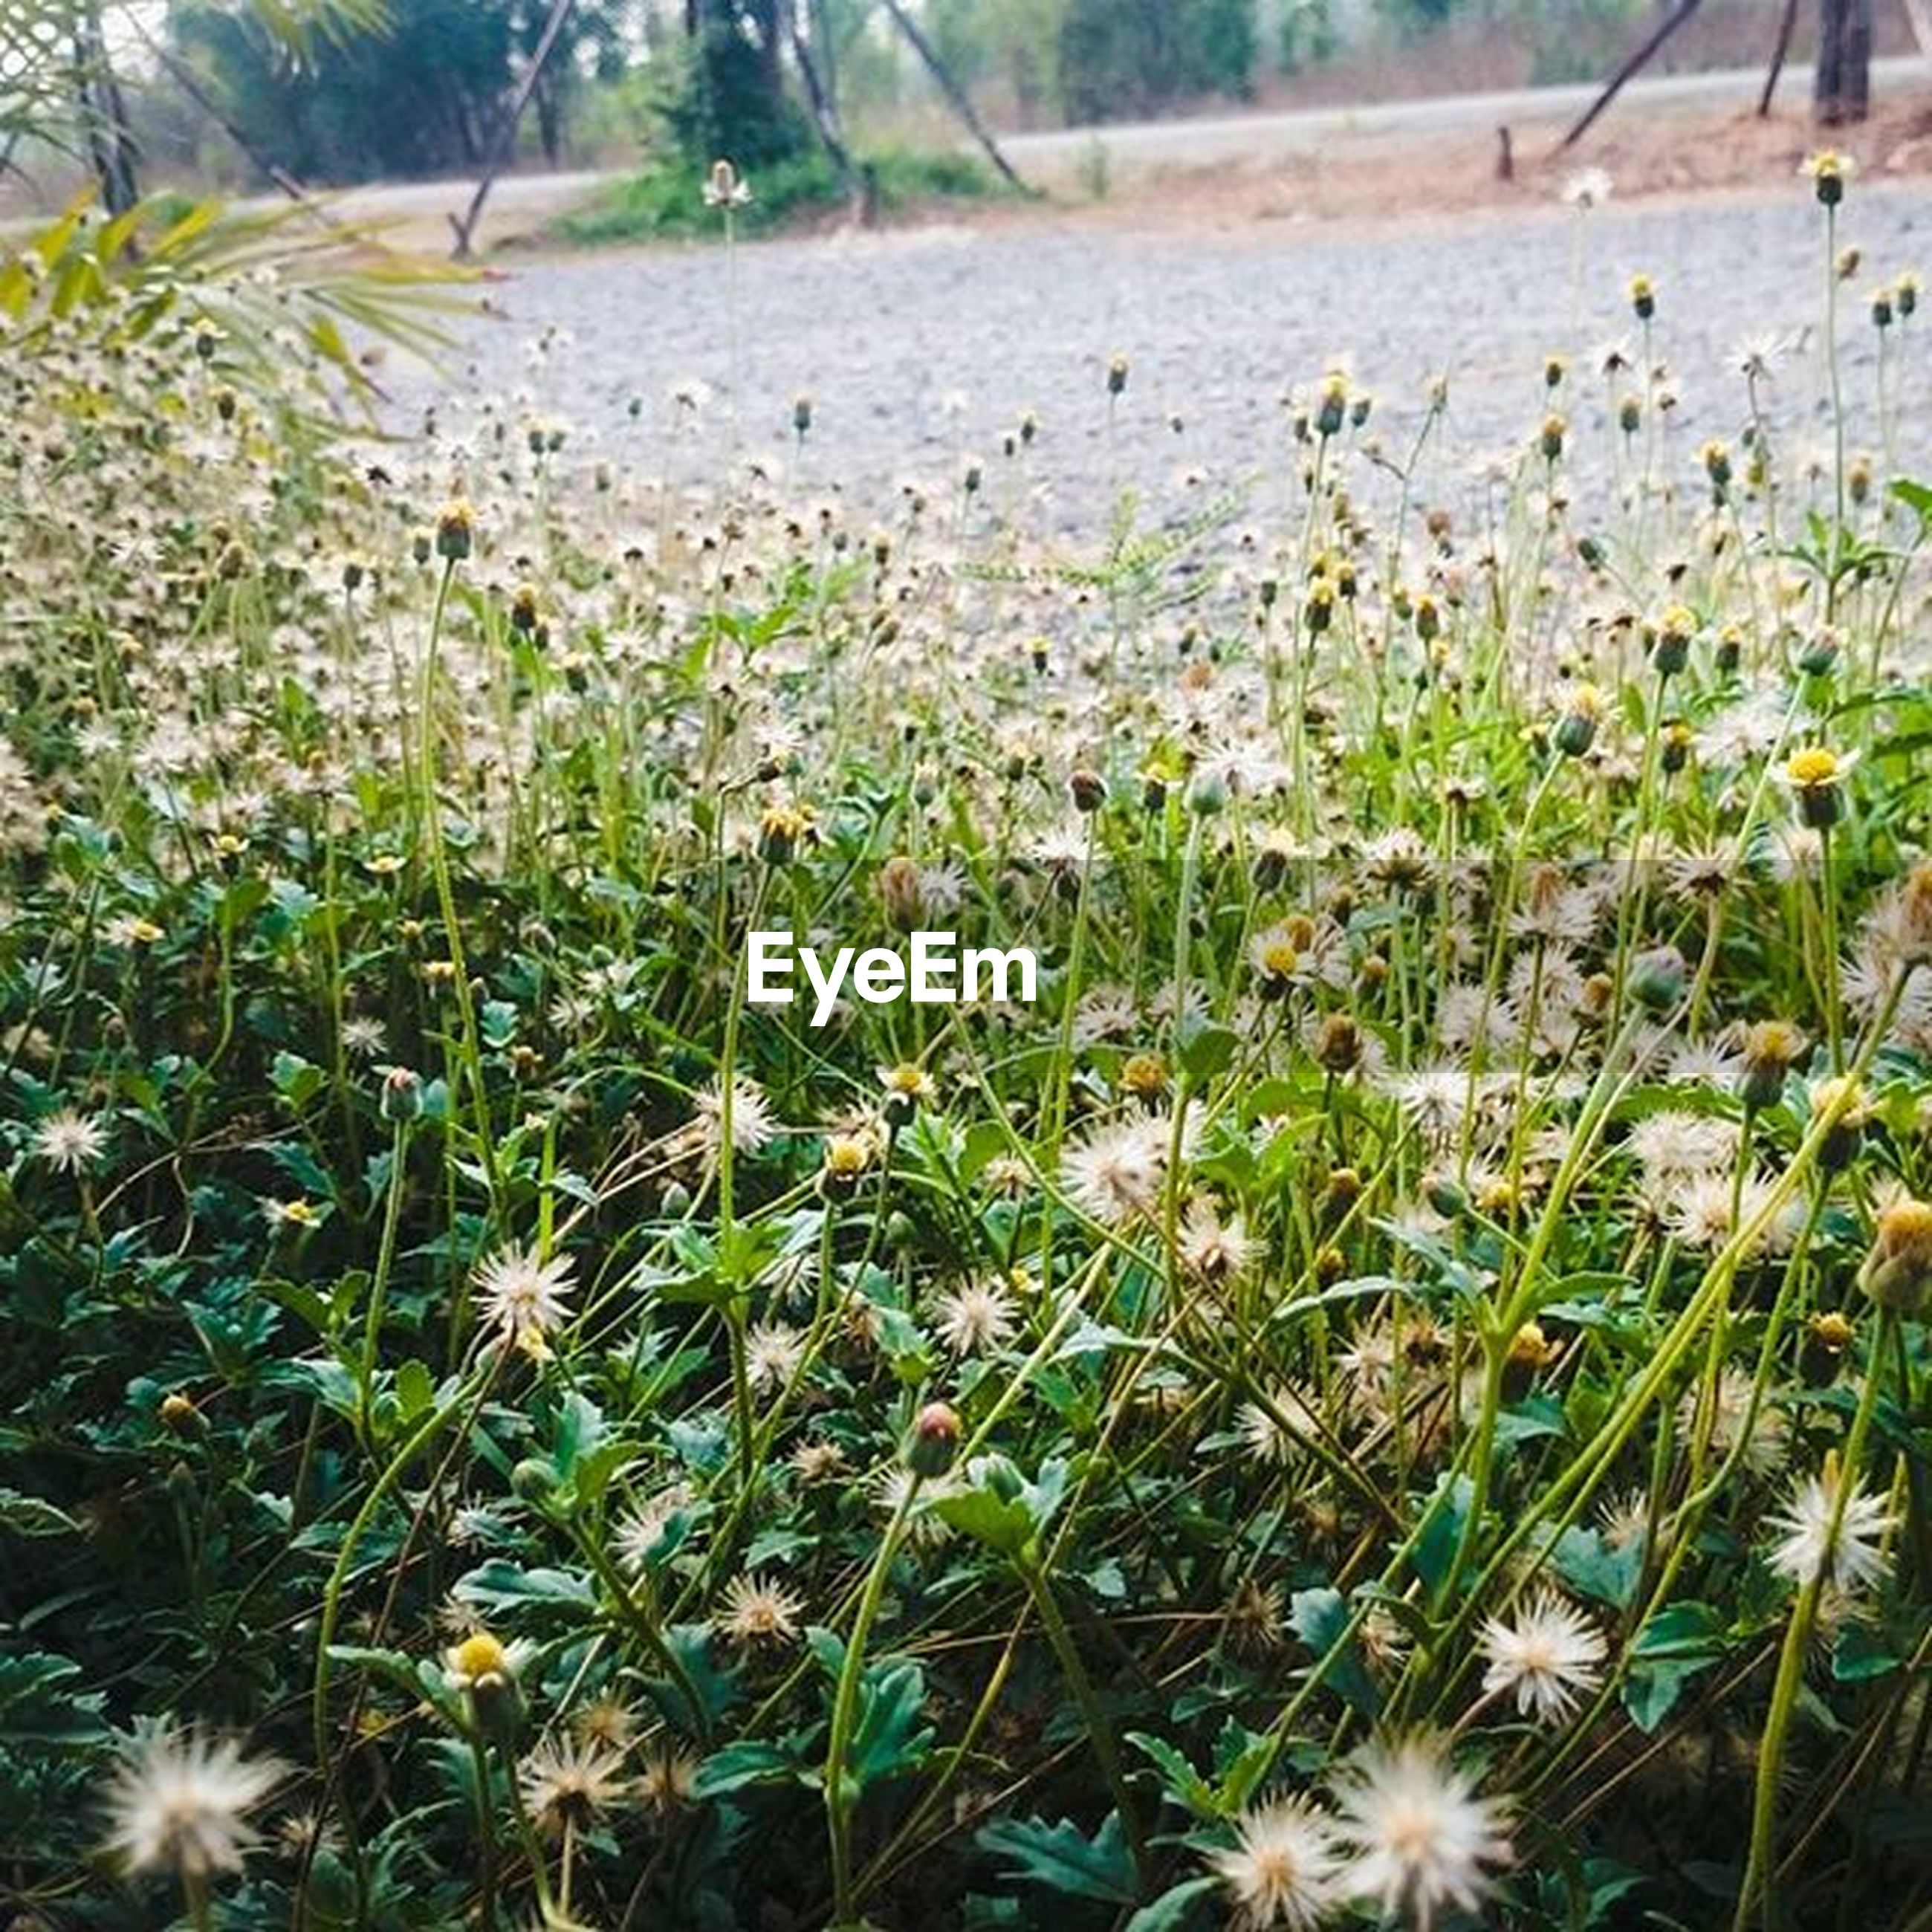 growth, plant, flower, grass, field, nature, freshness, beauty in nature, sunlight, tranquility, fragility, outdoors, day, growing, no people, blooming, focus on foreground, high angle view, tranquil scene, landscape